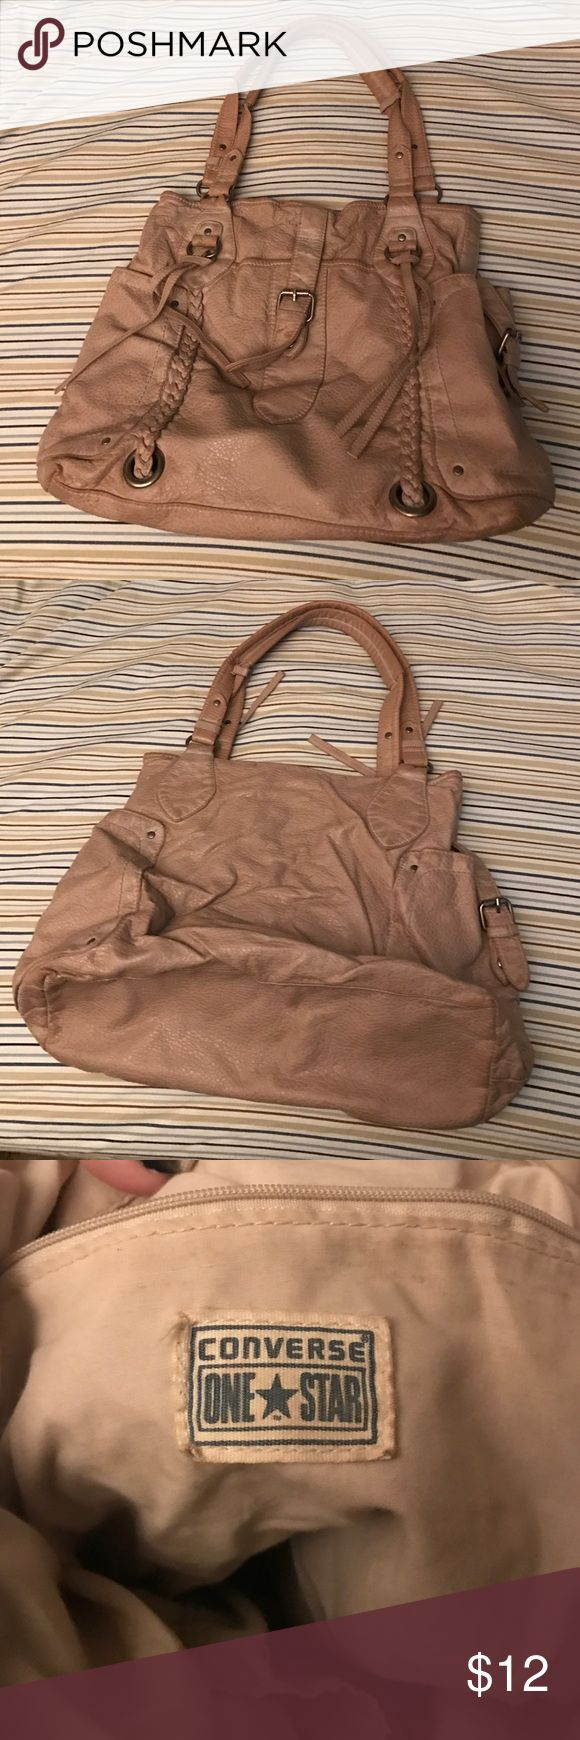 Tan Converse purse 👛 Tan Converse purse. Has a small side zipper pocket inside with a wide open pocket as well. The sides also are functioning pockets that close. Great for any occasion and season. Converse Bags Shoulder Bags